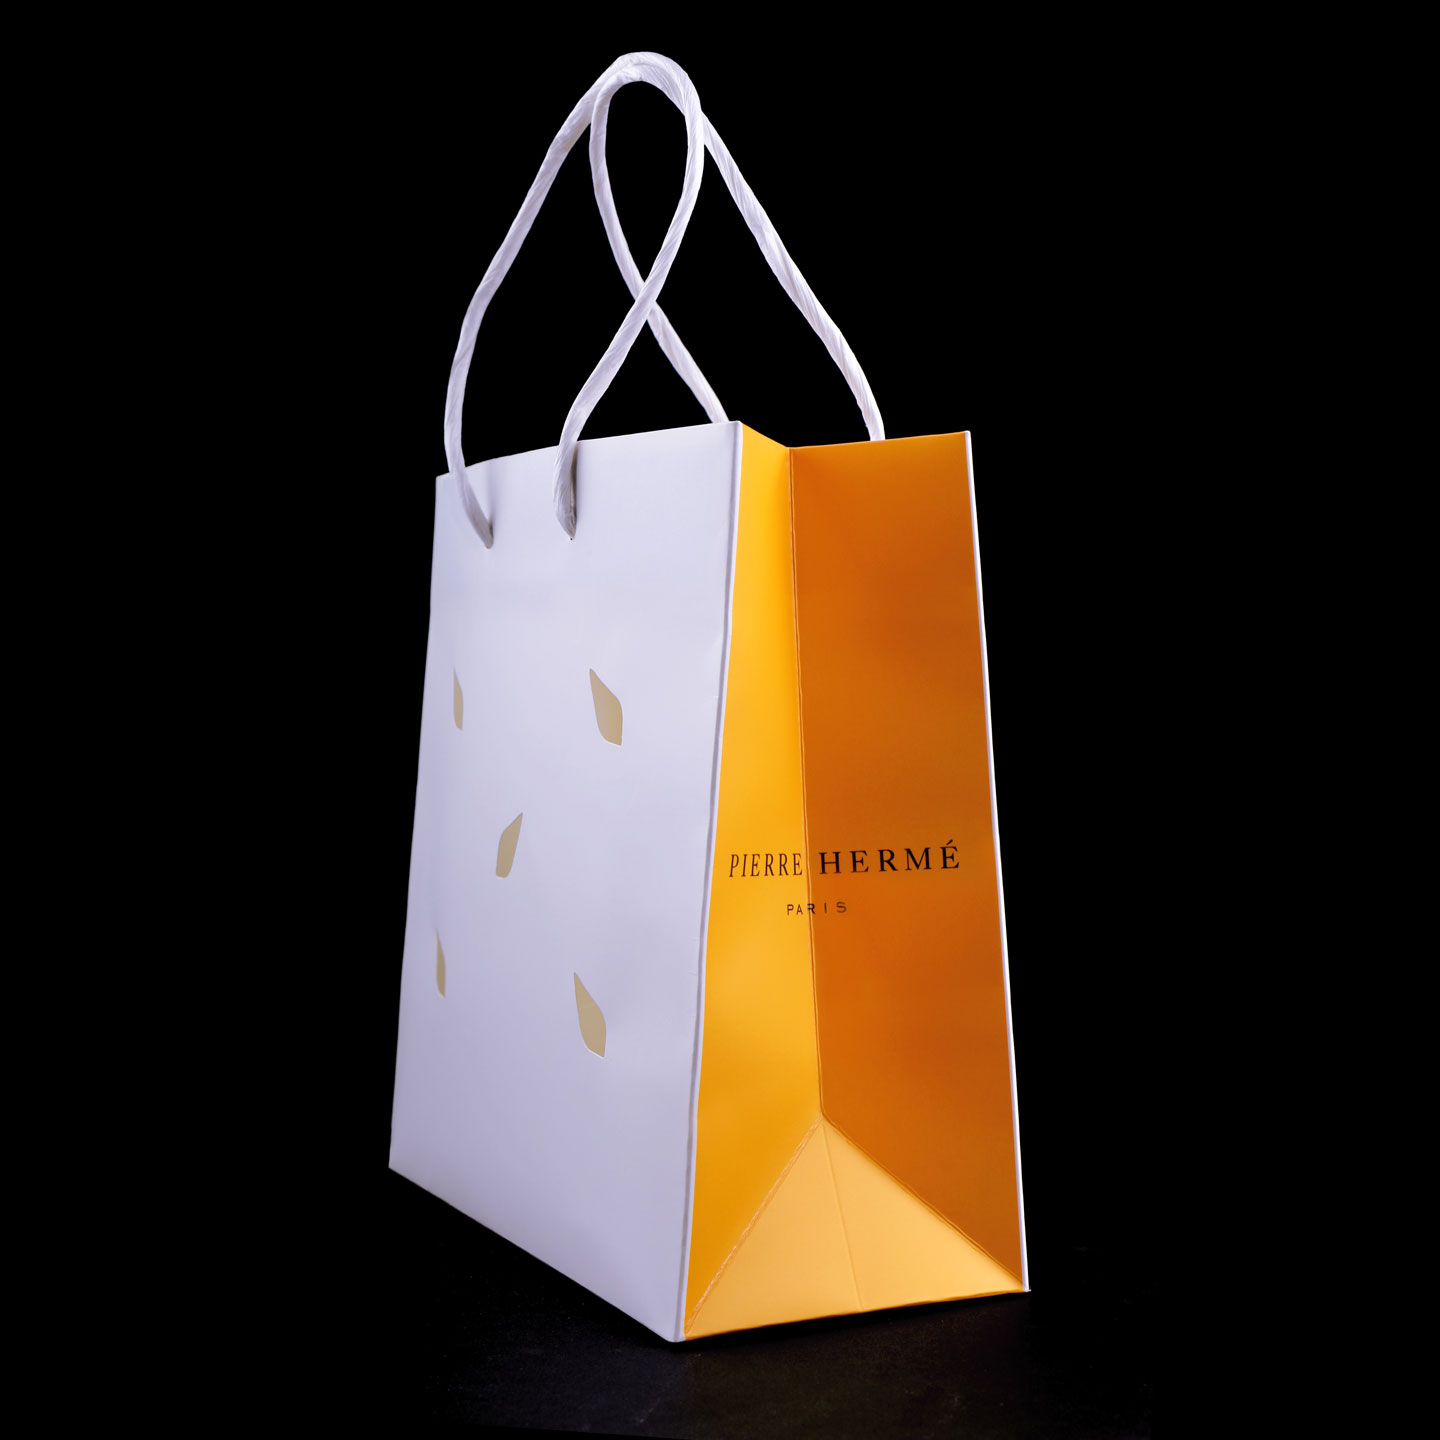 French Photographer Paris France Studio Packshot Photography Pierre Hermé Gift Bag